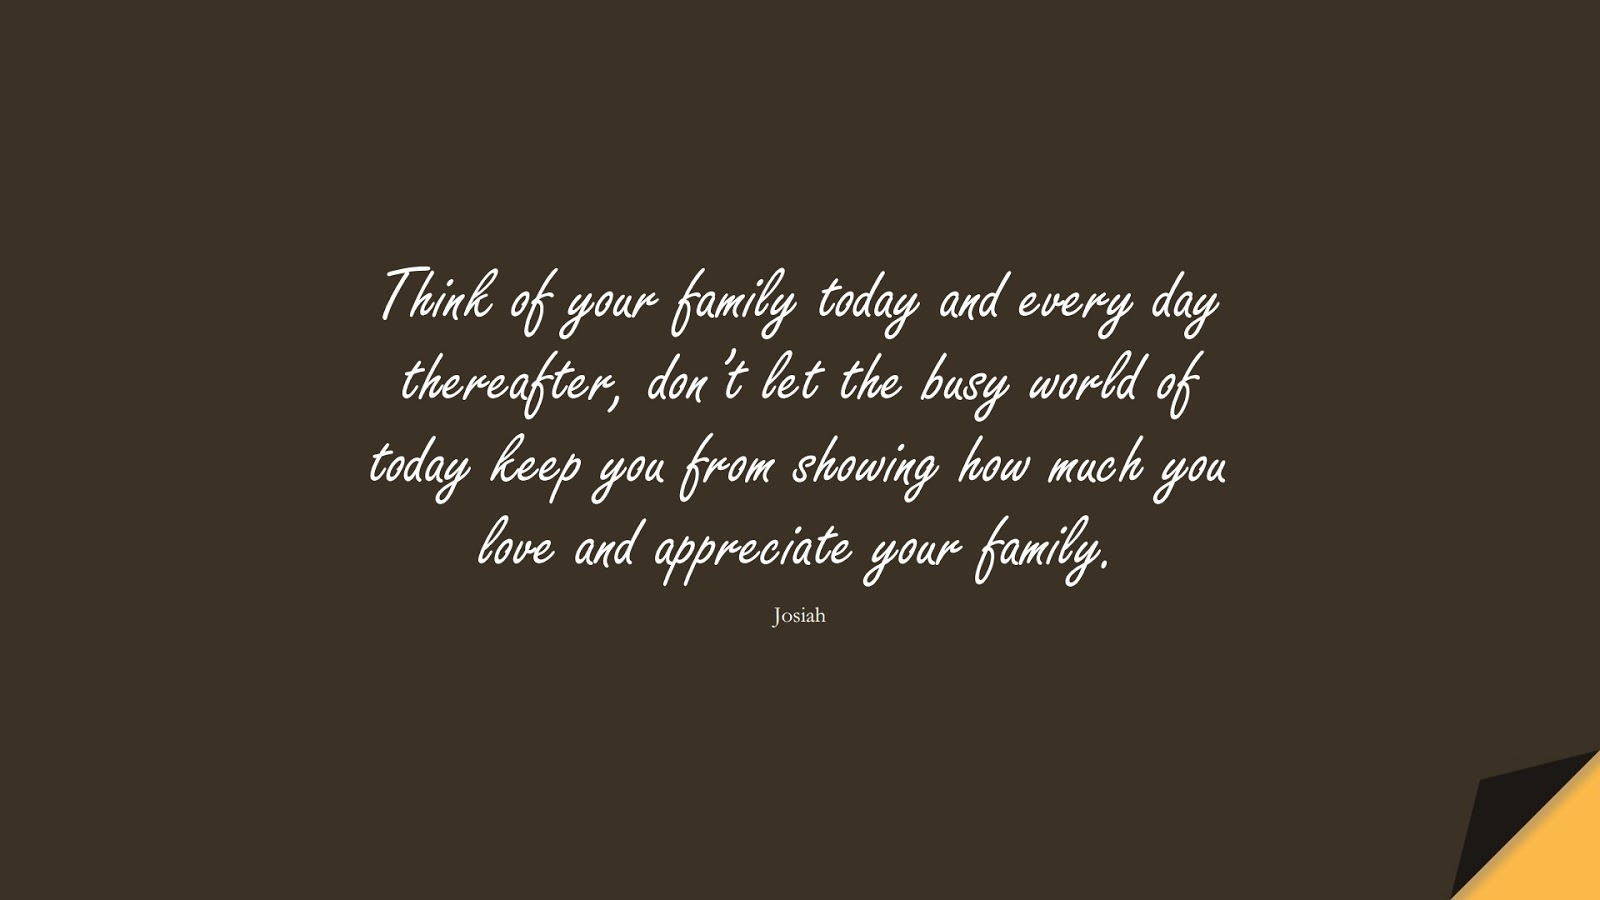 Think of your family today and every day thereafter, don't let the busy world of today keep you from showing how much you love and appreciate your family. (Josiah);  #FamilyQuotes